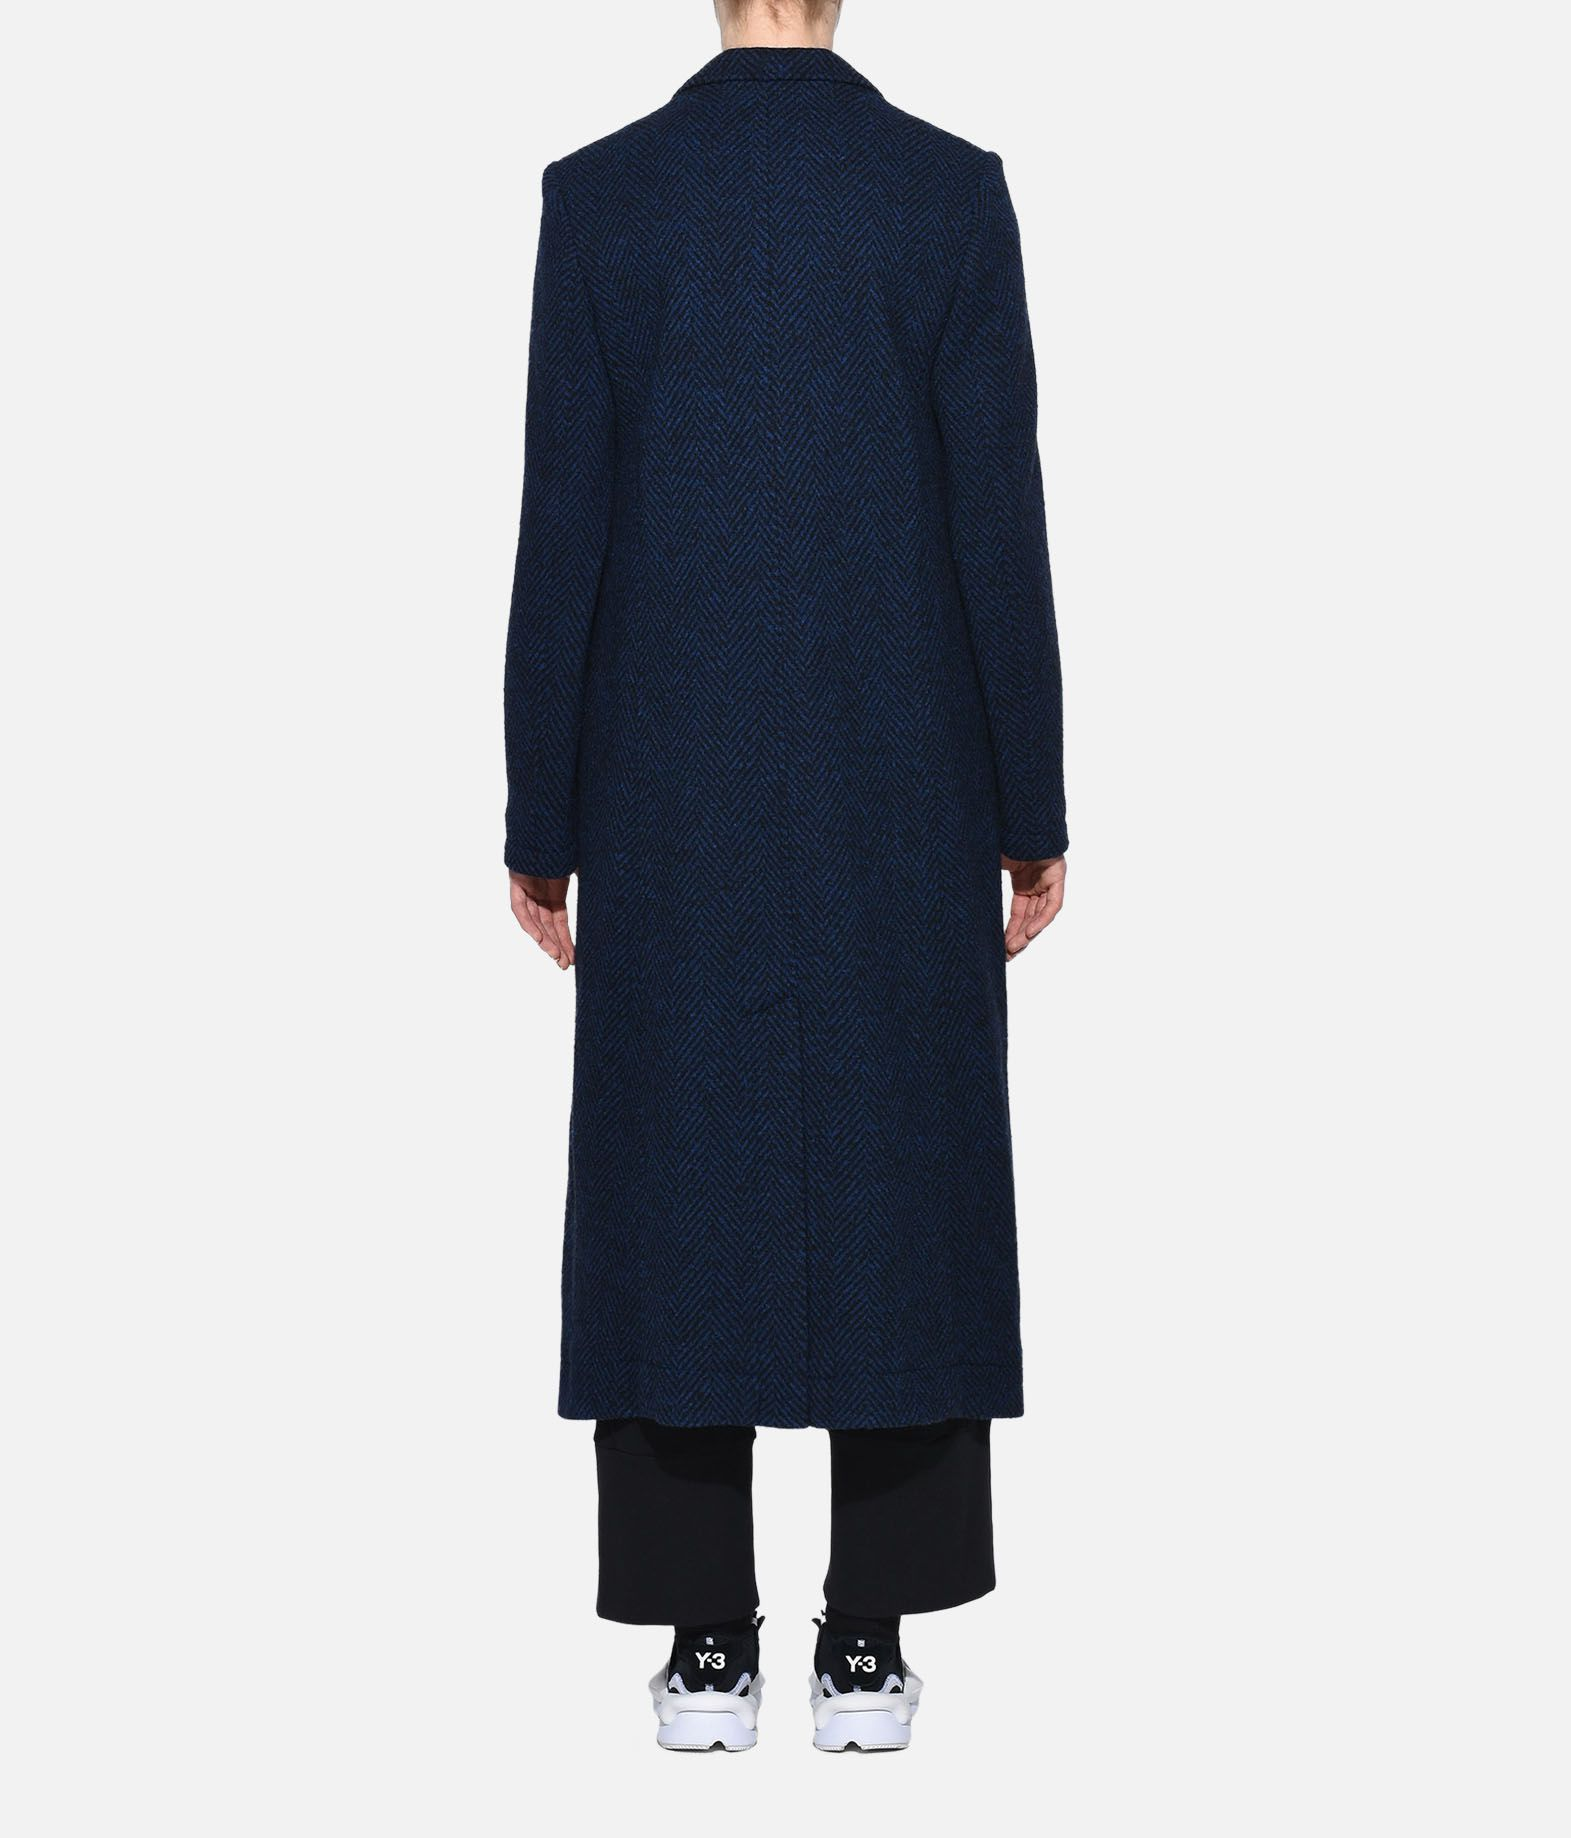 Y-3 Y-3 3-Stripes Tailored Wool Coat Coat Woman d